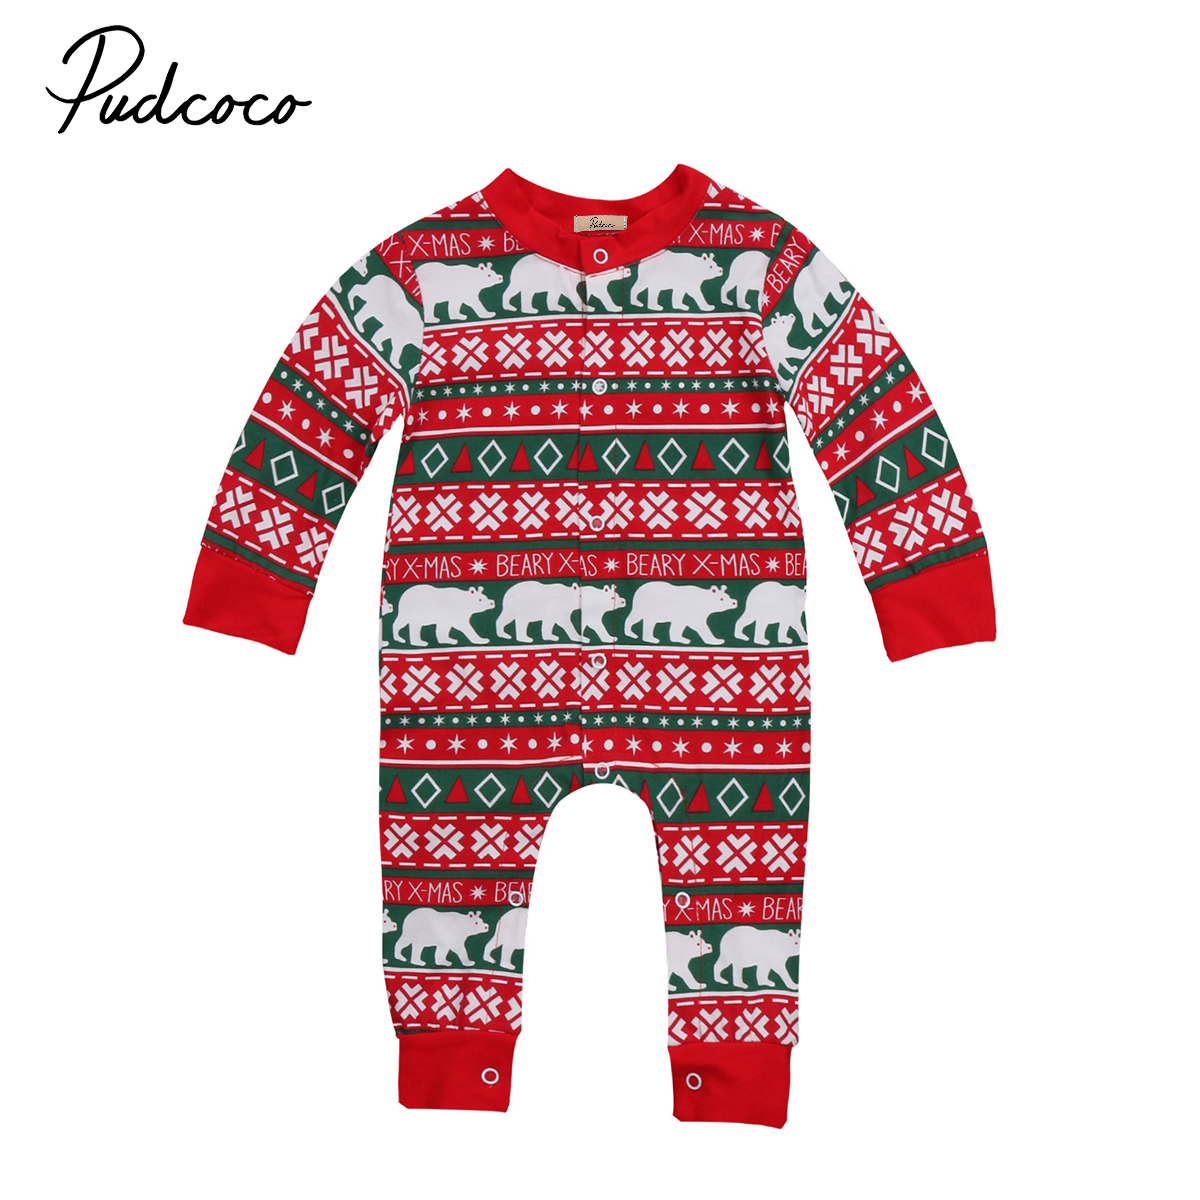 Autumn Winter Warm Newborn Baby Long Sleeve Rompers Christmas Romper Infant Boy Girl Jumpsuit Kids Clothes Outfits Age 0-24M newborn infant baby boy girl cotton romper jumpsuit boys girl angel wings long sleeve rompers white gray autumn clothes outfit